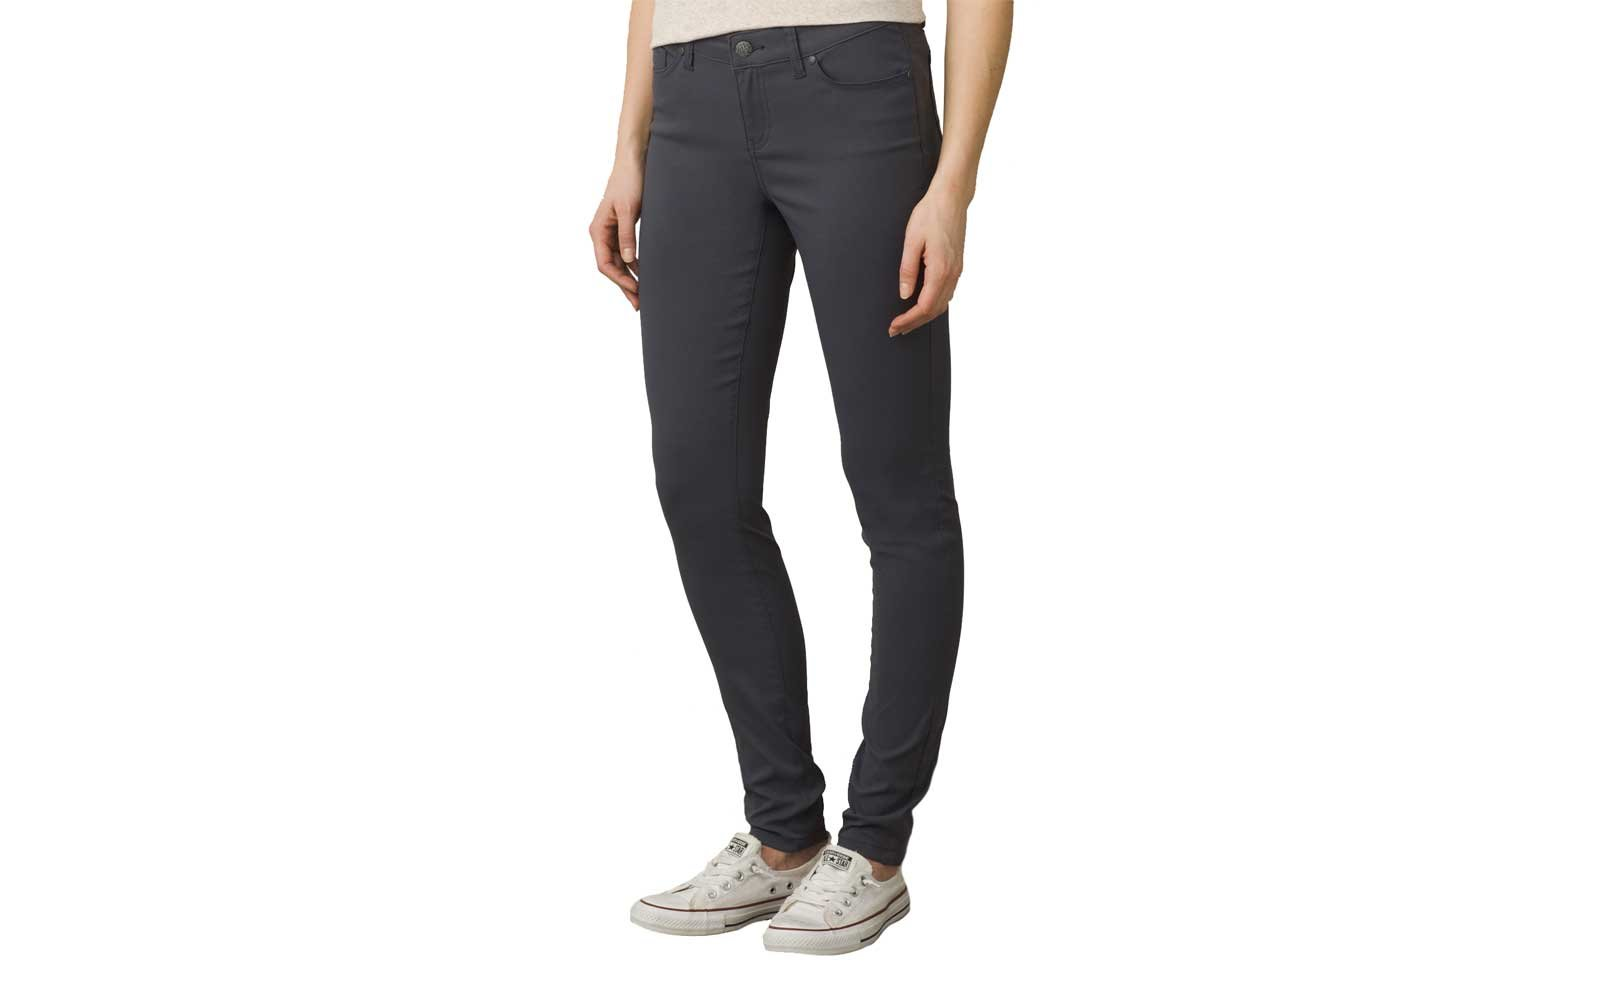 5e62b44f560b5e The Best Travel Pants for Women Who Hate Flying in Jeans | Travel + ...